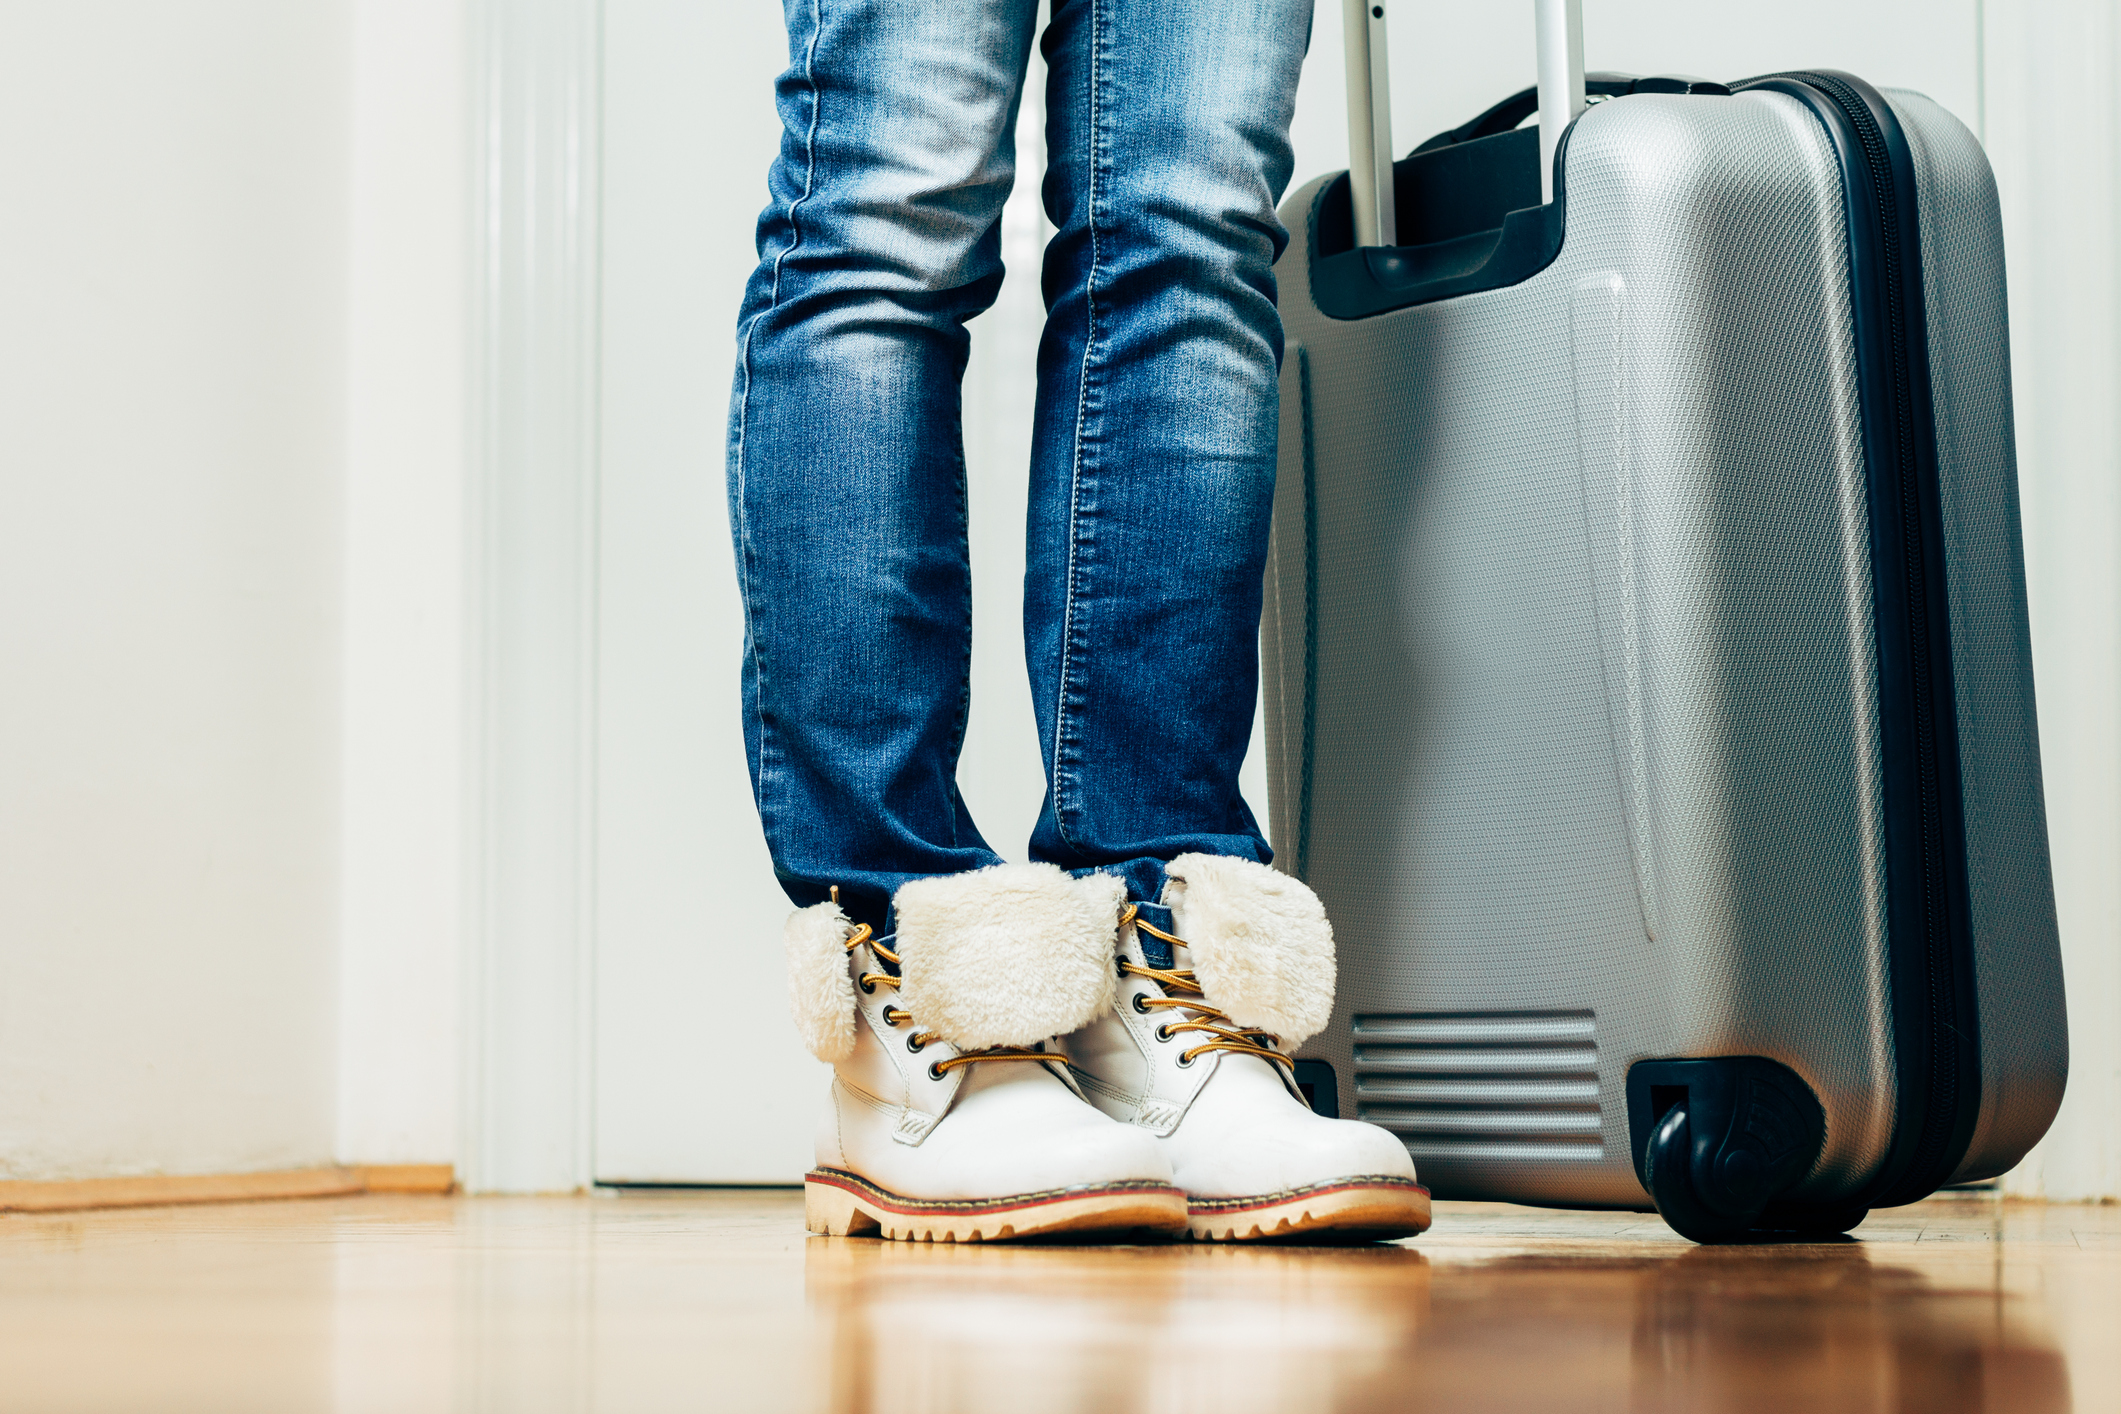 Lost luggage – where has your suitcase been without you?